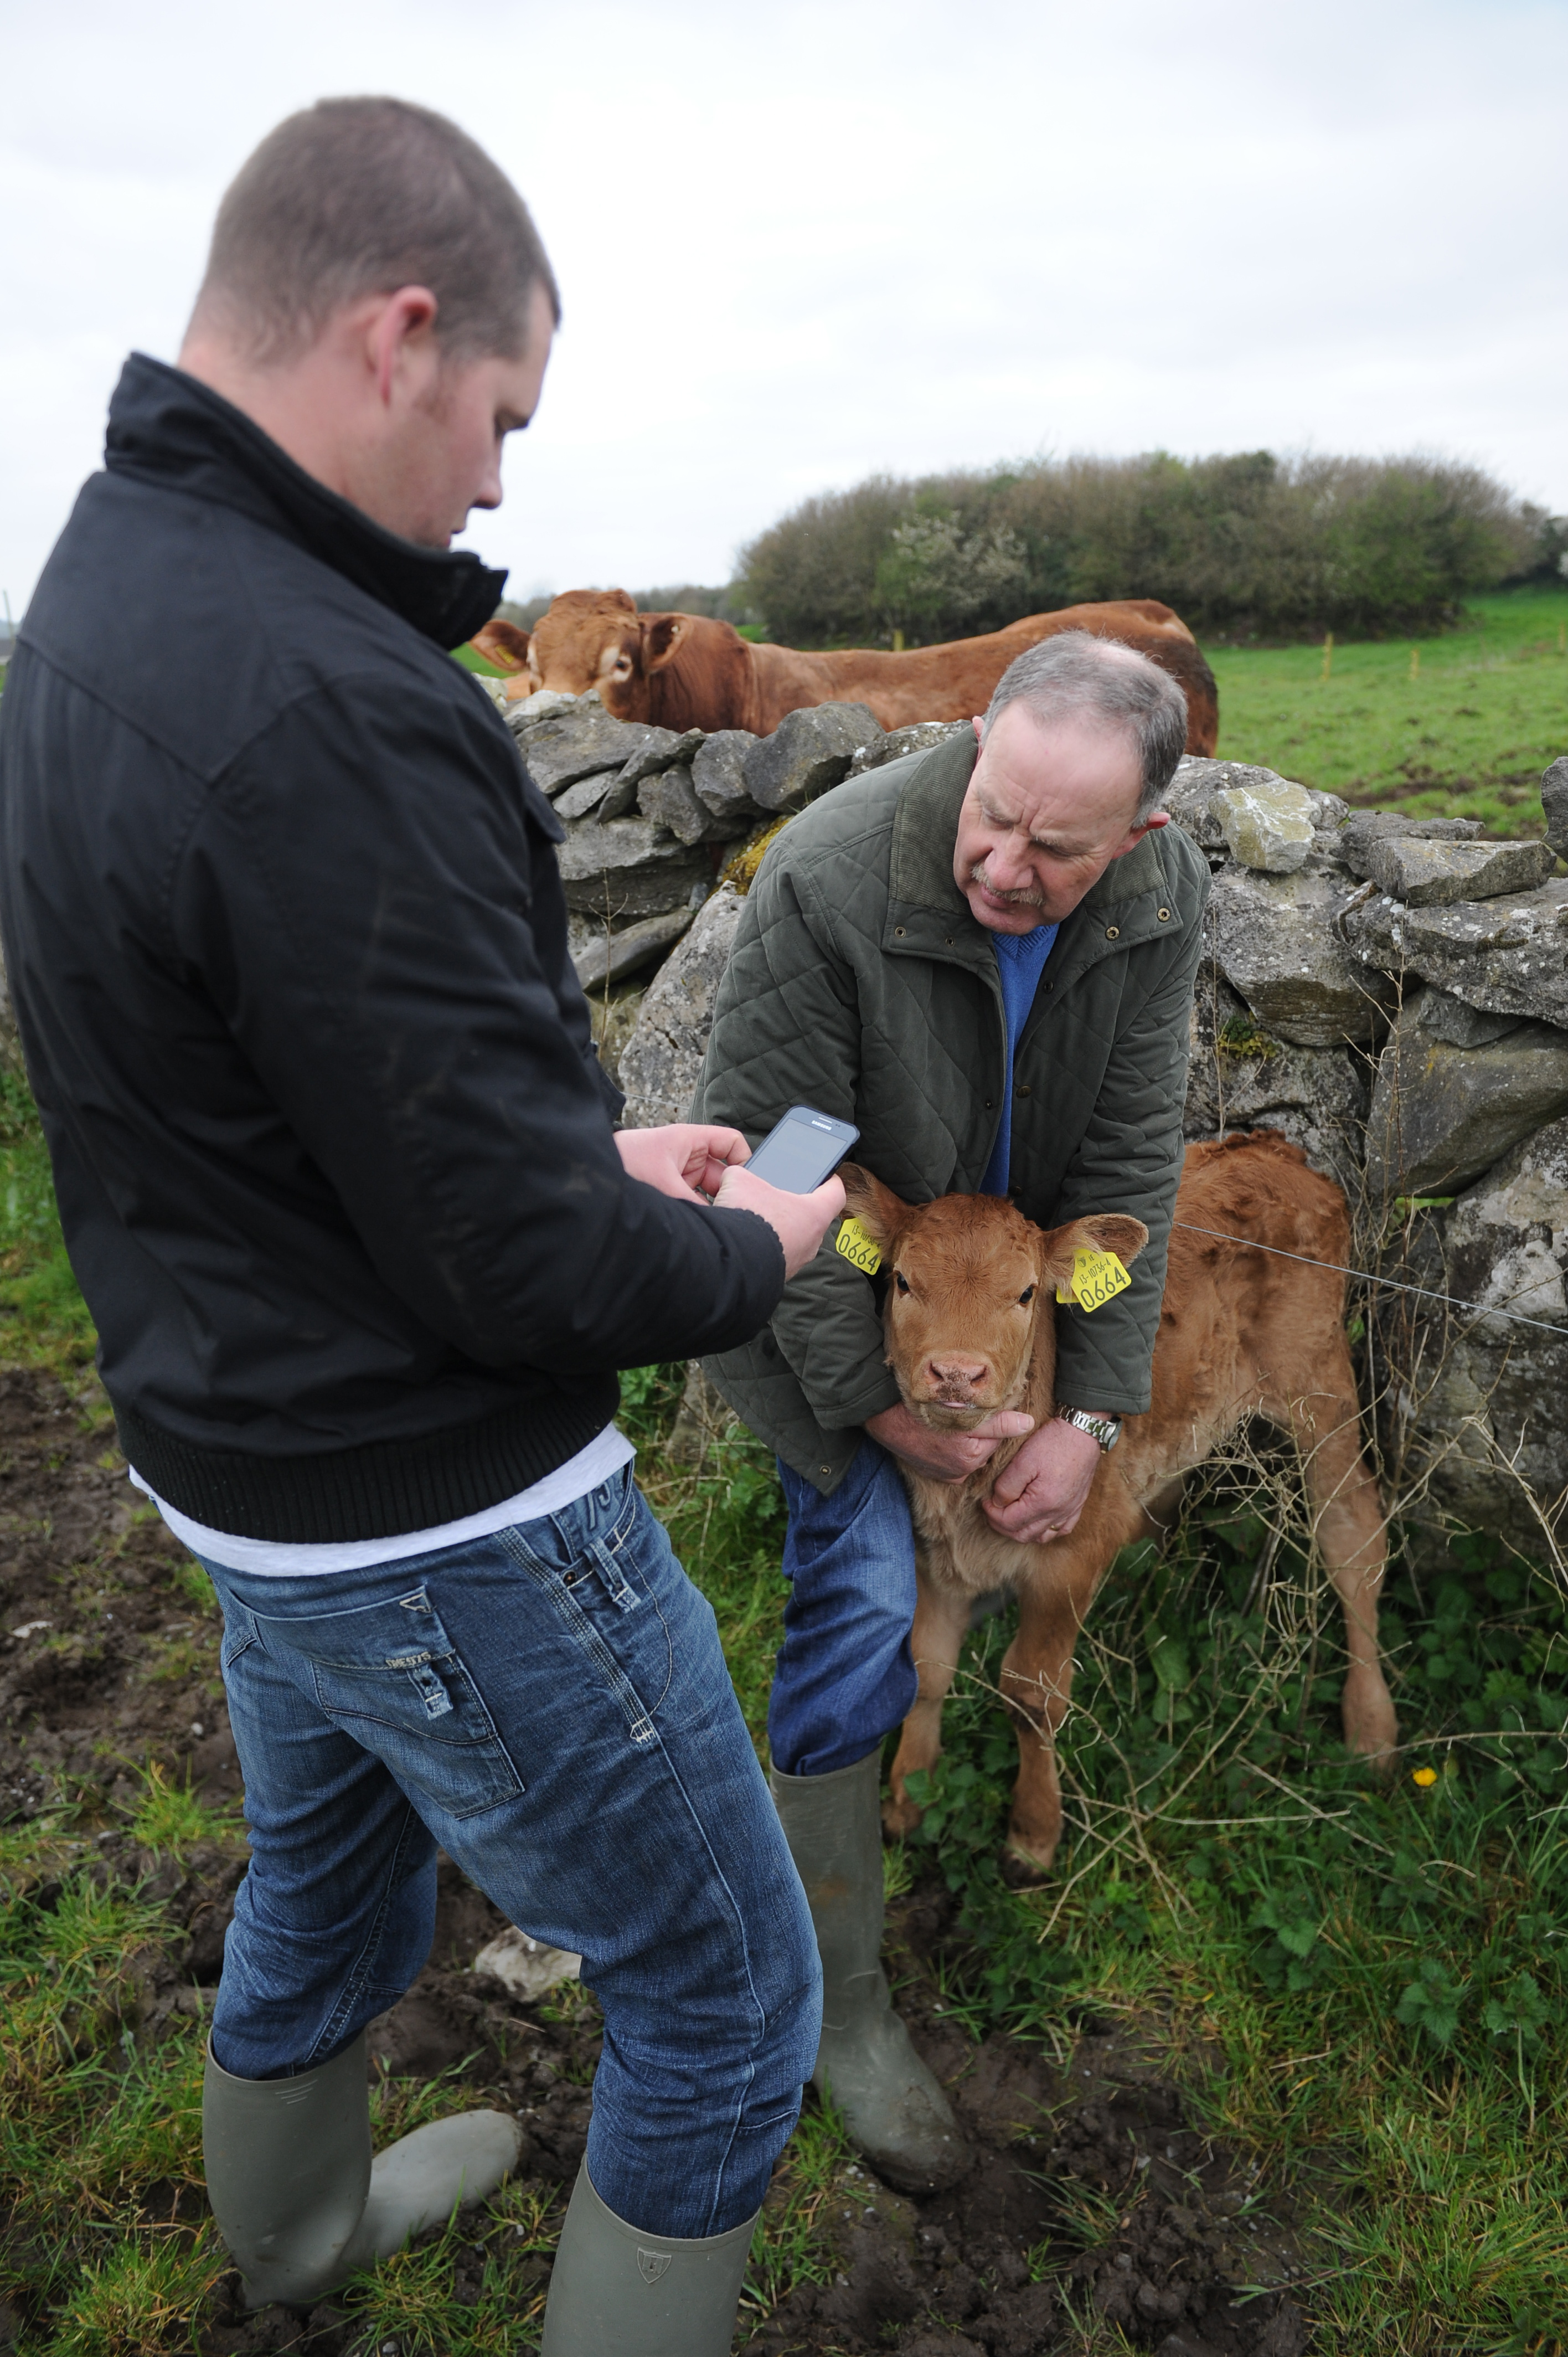 Brian Kelly registering his new calf on Herdwatch with his father Timothy potrait 395